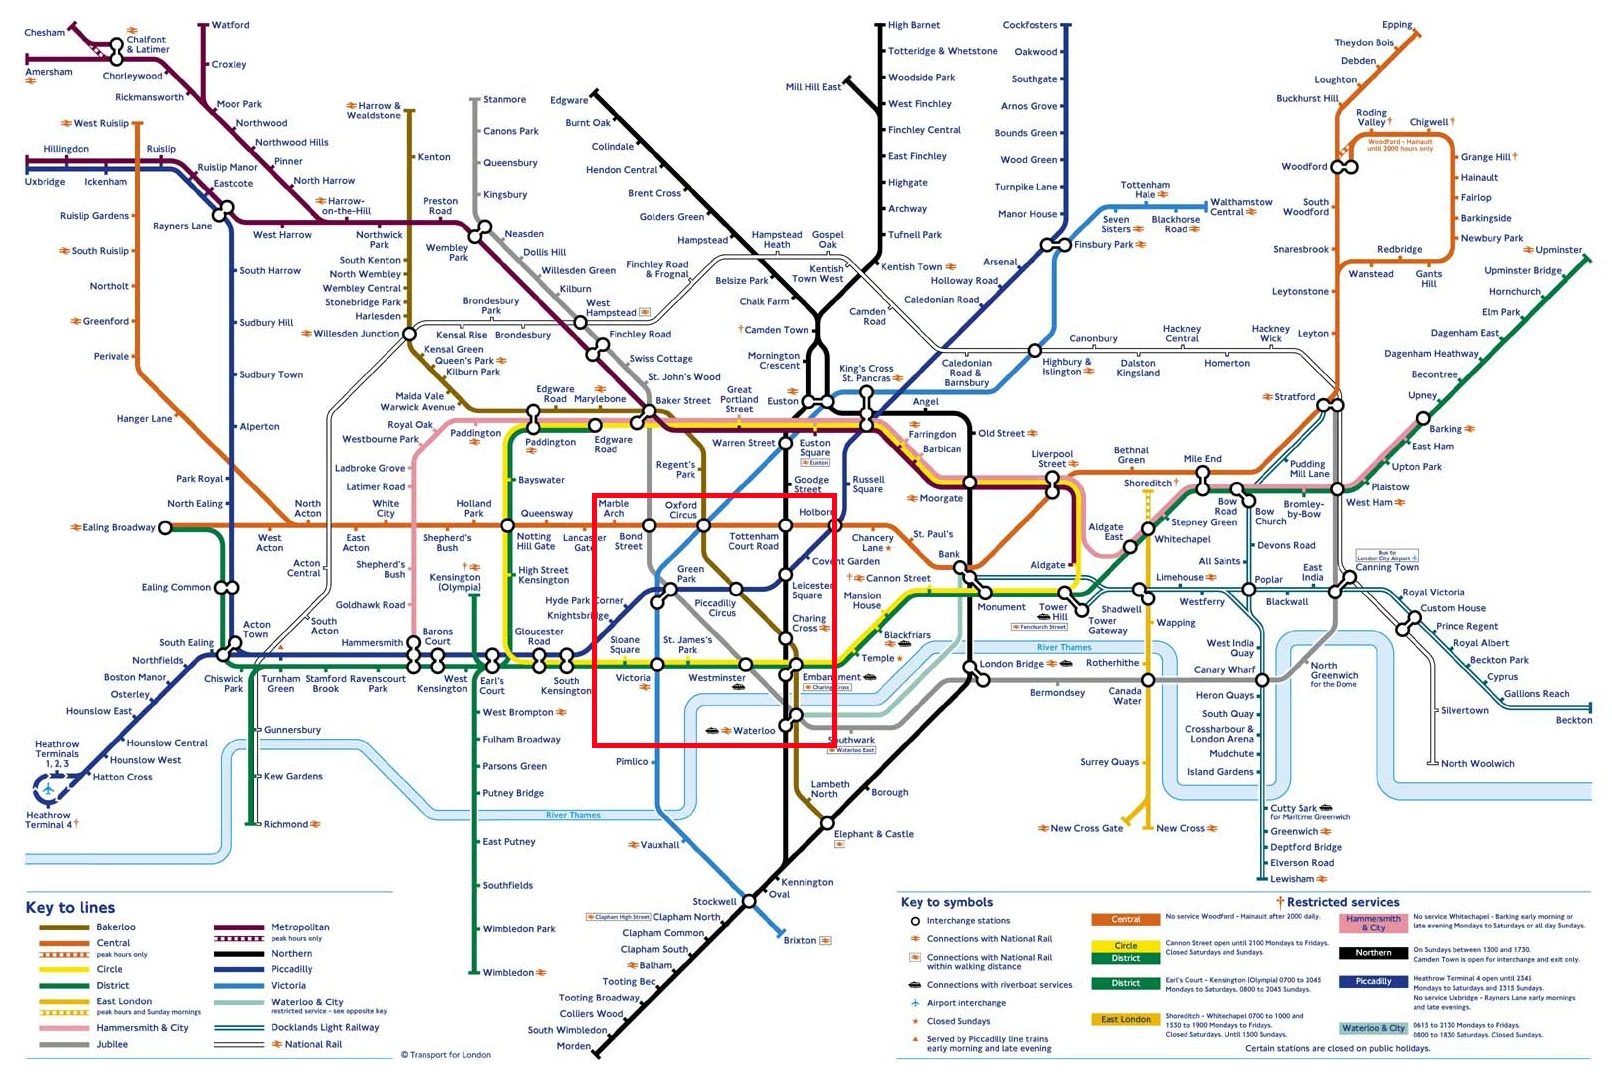 map of london airports and train stations How To Reach The Royal Society map of london airports and train stations